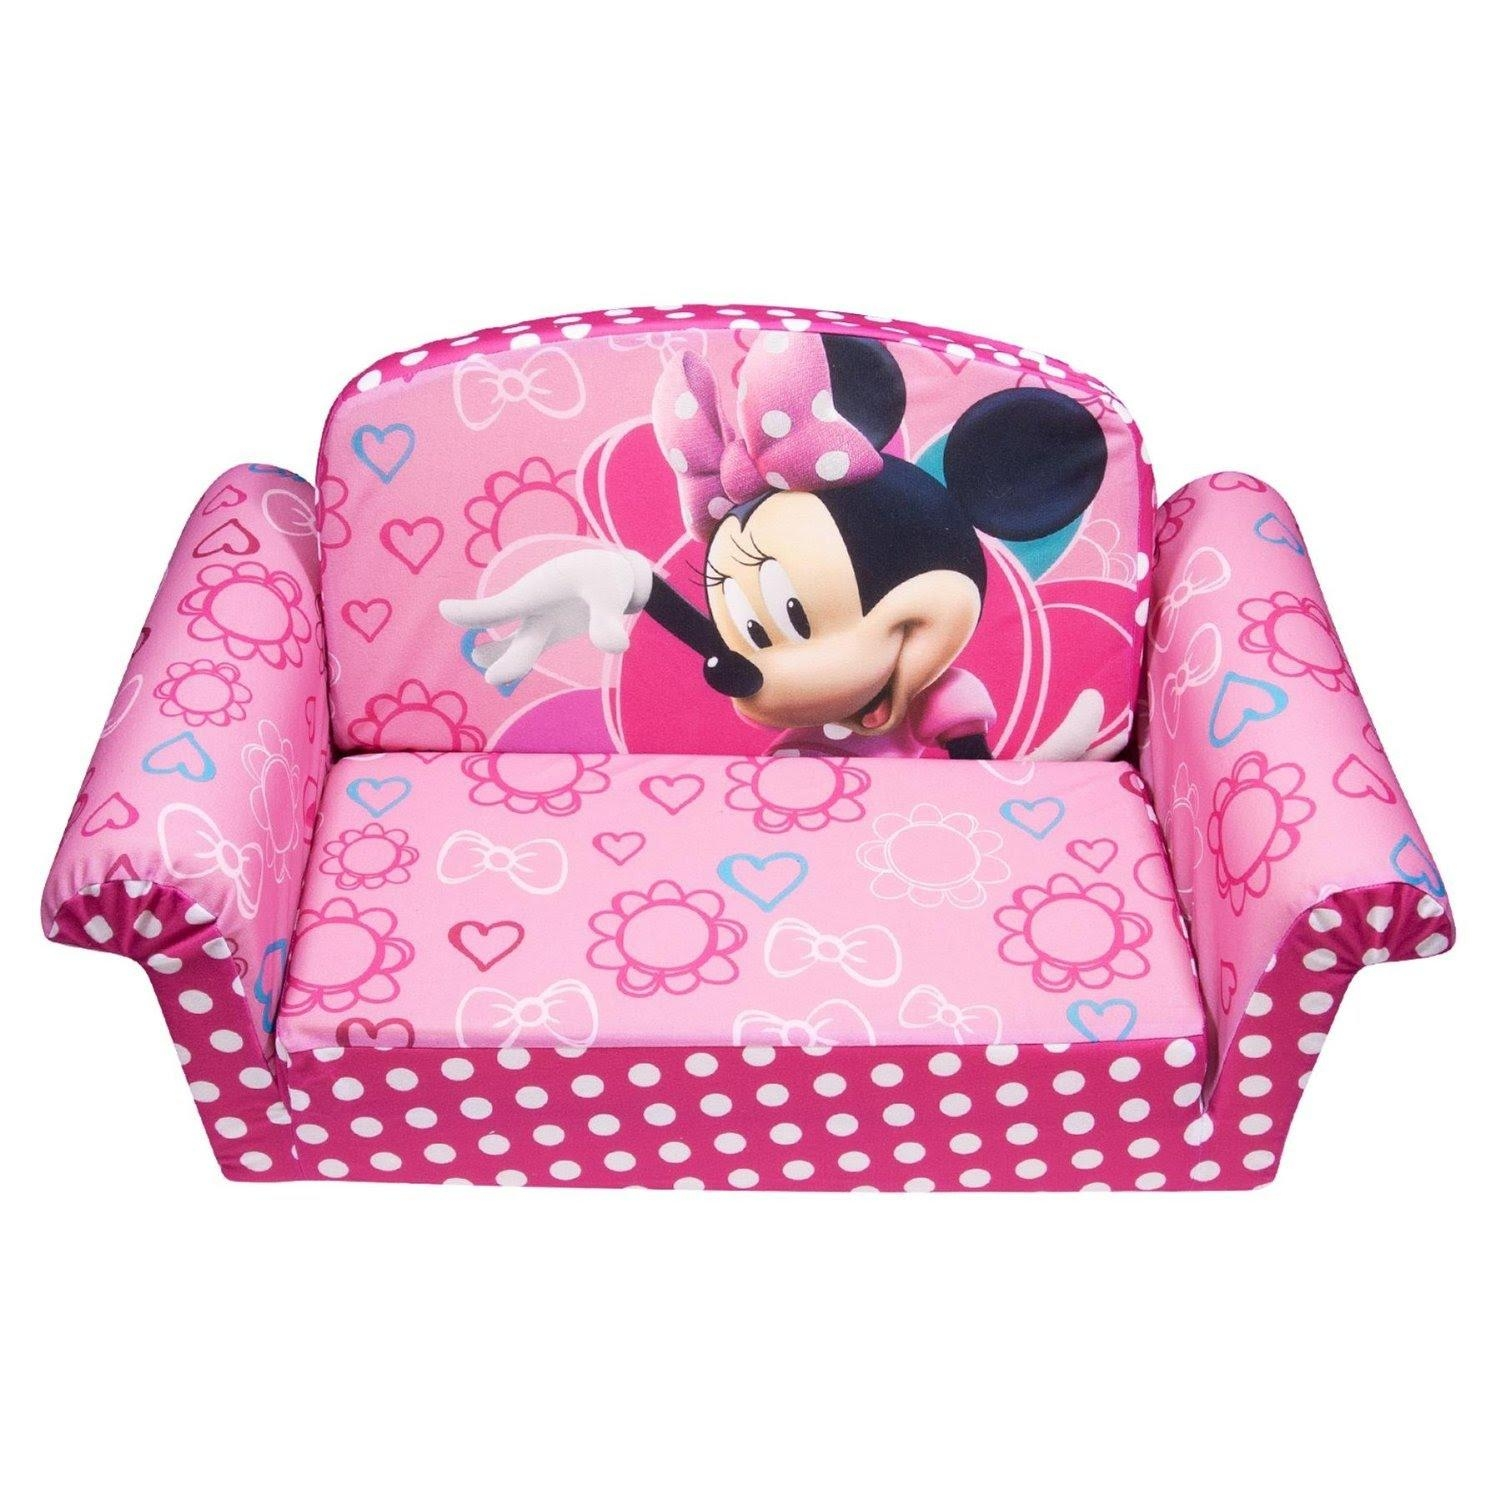 Review: Marshmallow Children's Furniture – 2 In 1 Flip Open Sofa Pertaining To Childrens Sofa Chairs (Image 10 of 20)